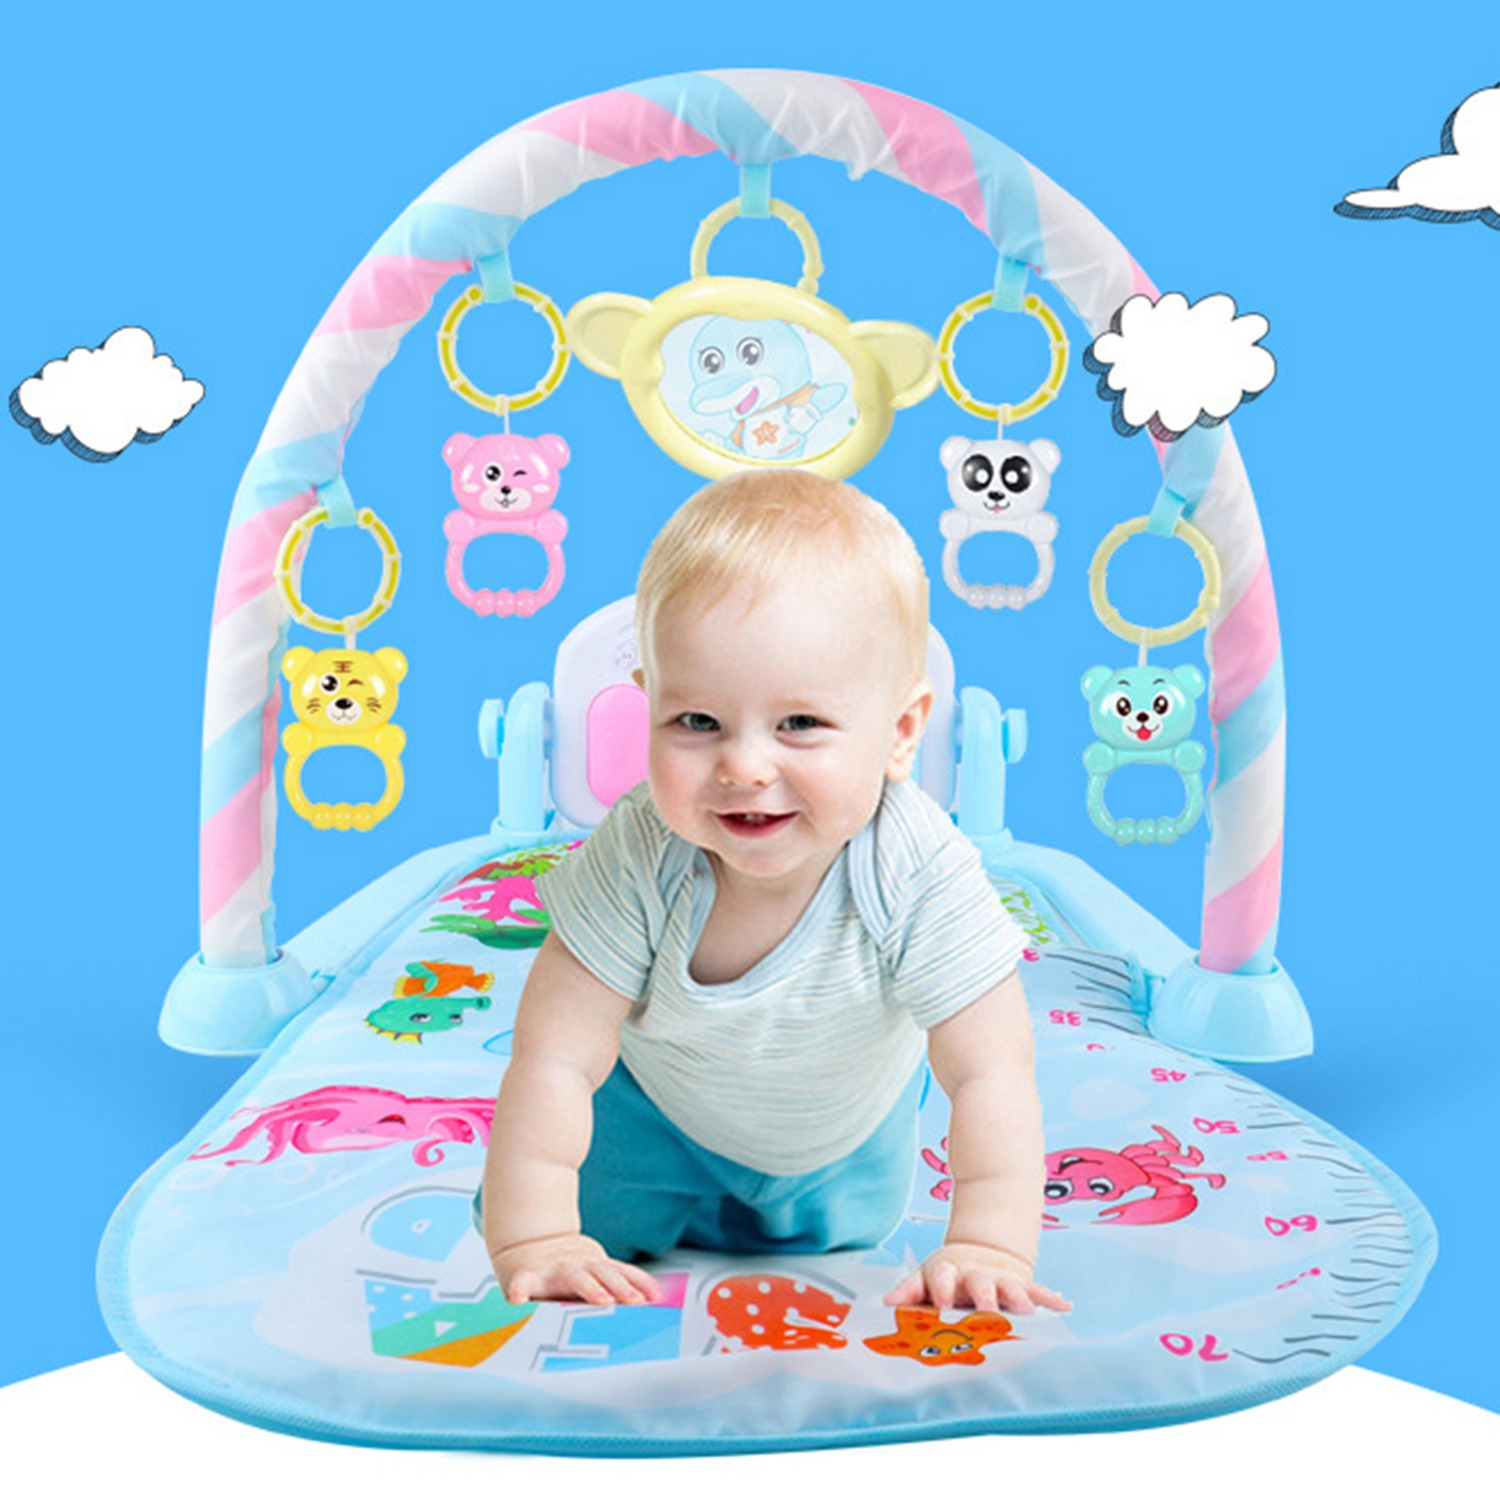 FBIL-Baby Activity Gym Children's Play Mat 0-12 Months Developing Carpet Soft Rattles Musical Toys Activity Rug For Babies Gam